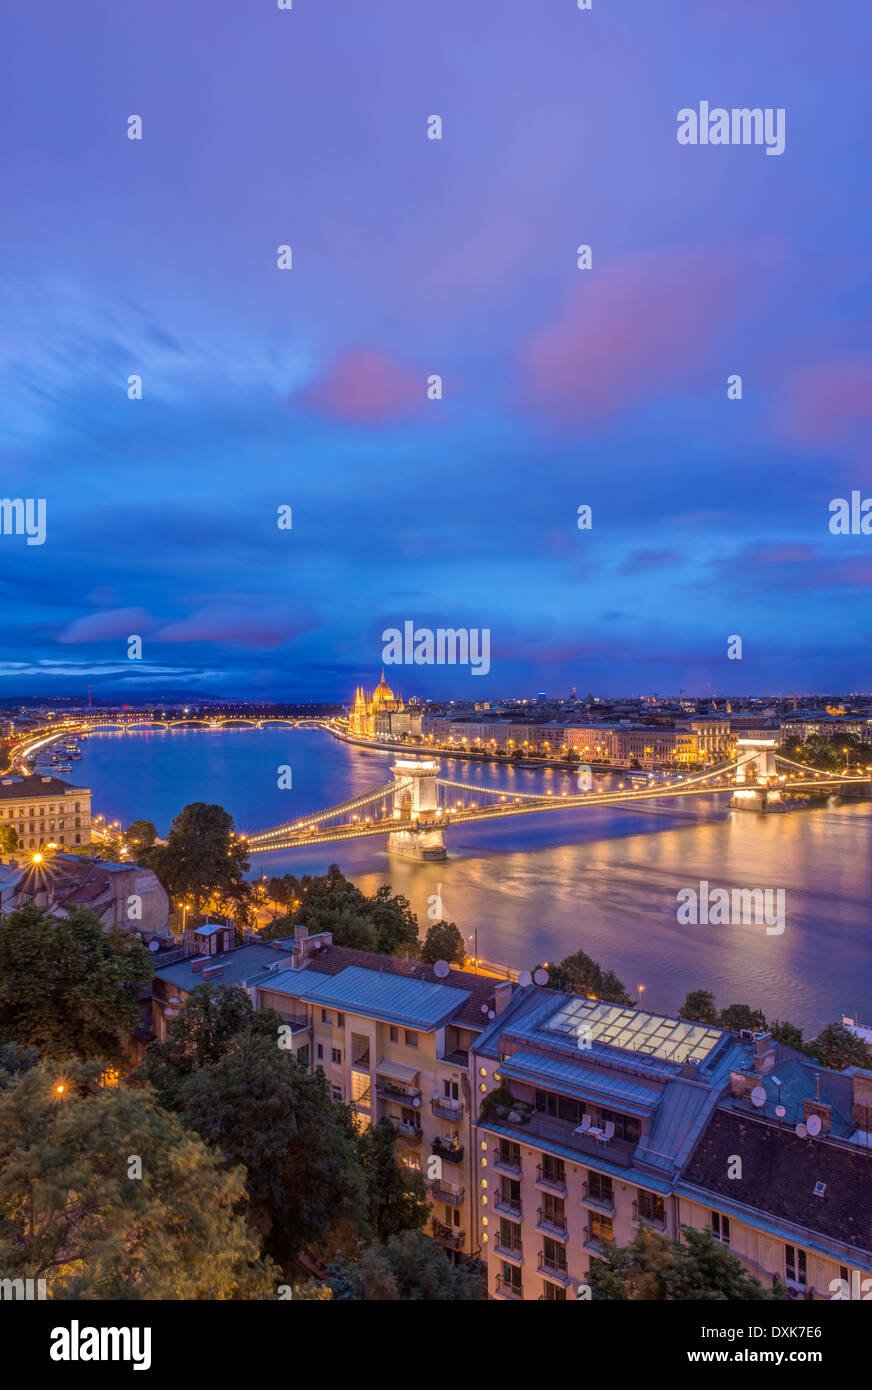 View of Chain Bridge illuminated at night, Budapest, Hungary - Stock Image